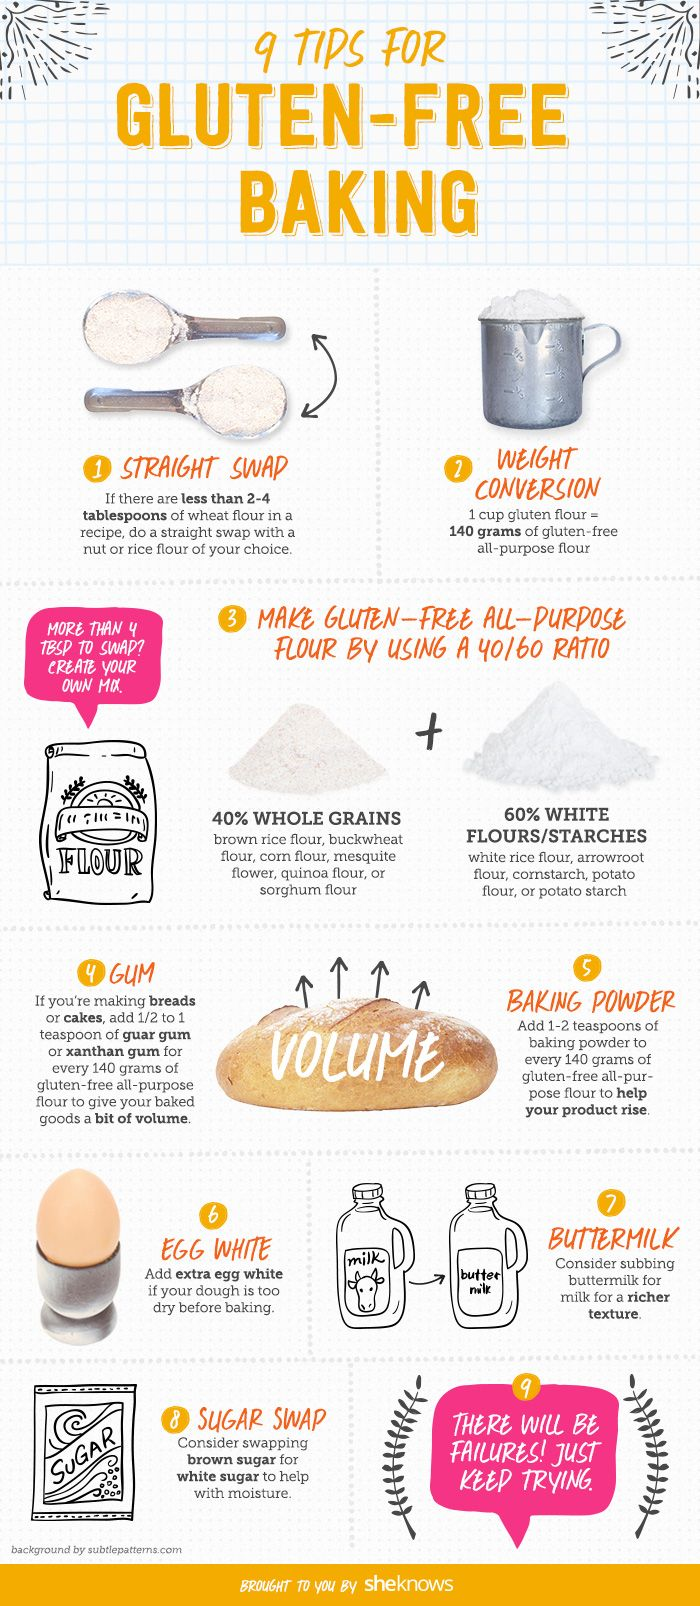 Gluten free baking tips infographic